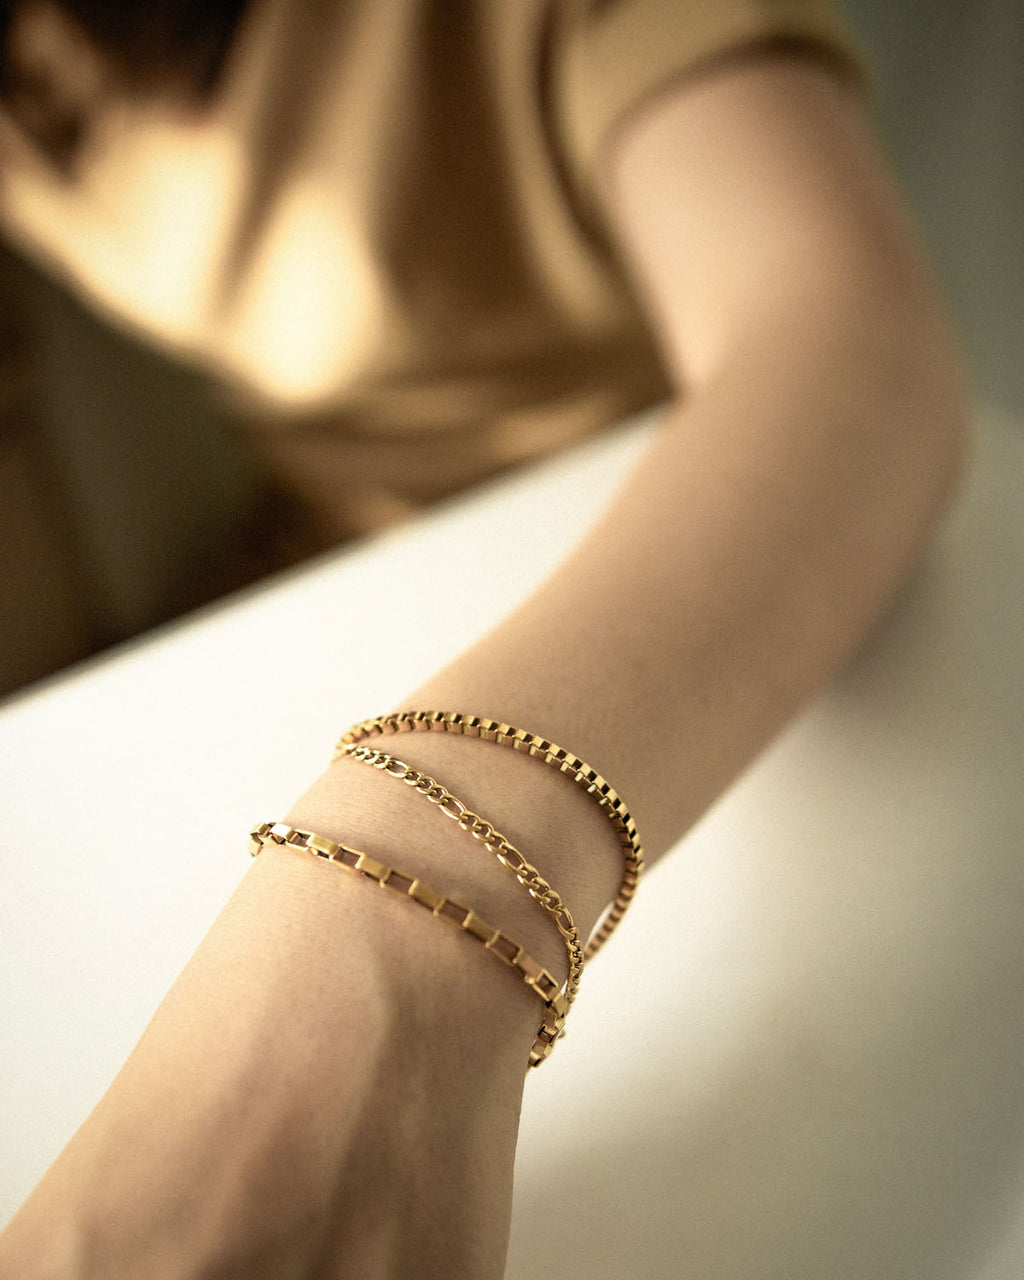 Stackable bracelets look by The Hexad